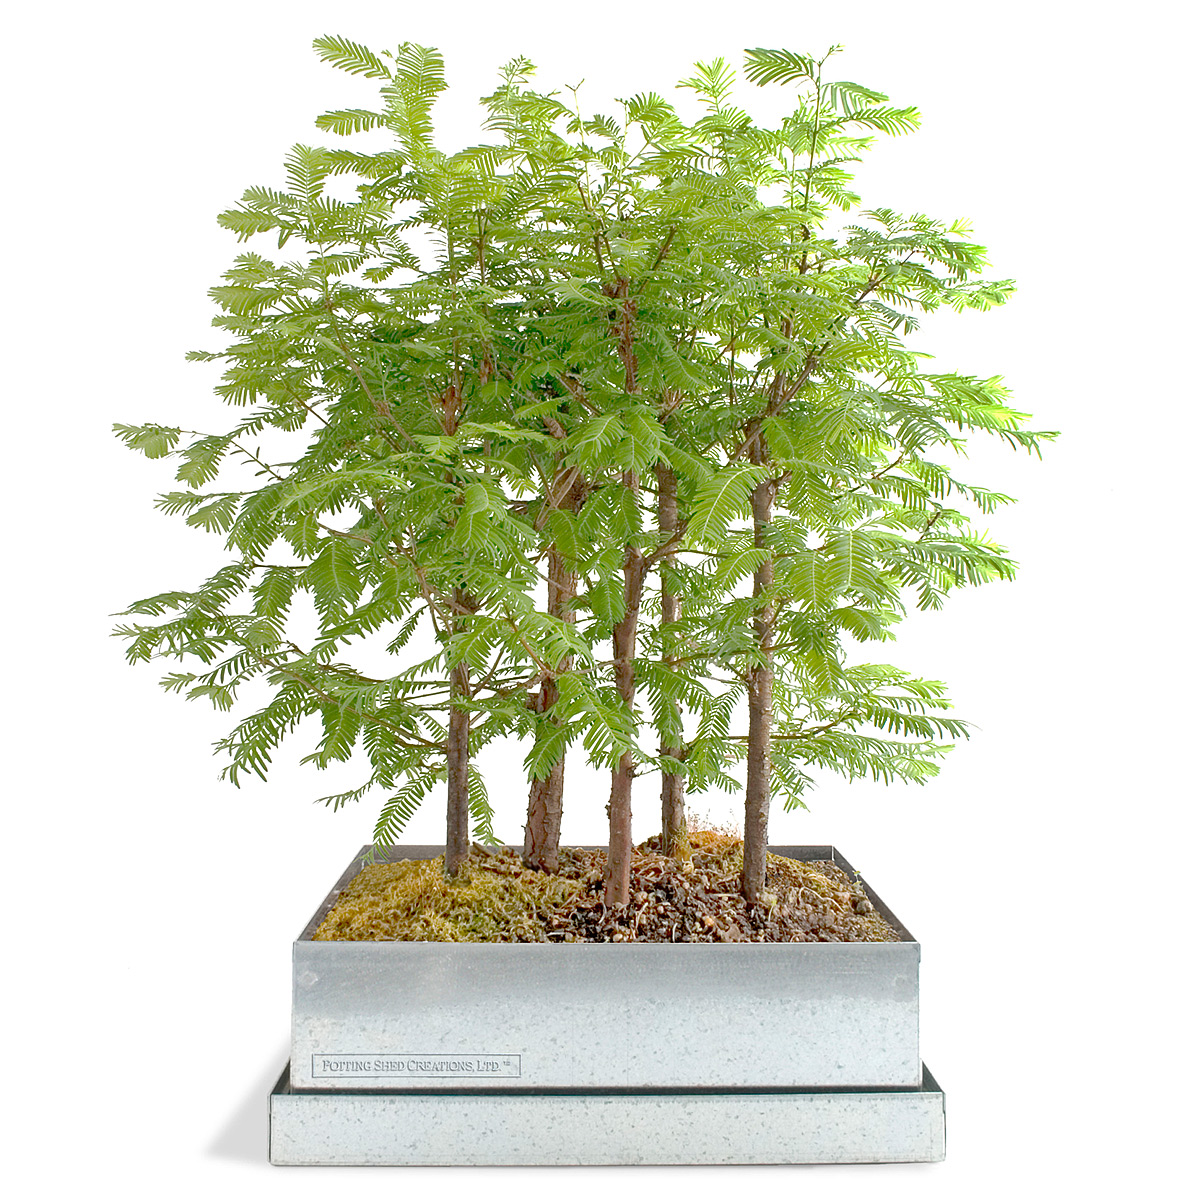 The Hip Subscription DIY Bonsai Forest